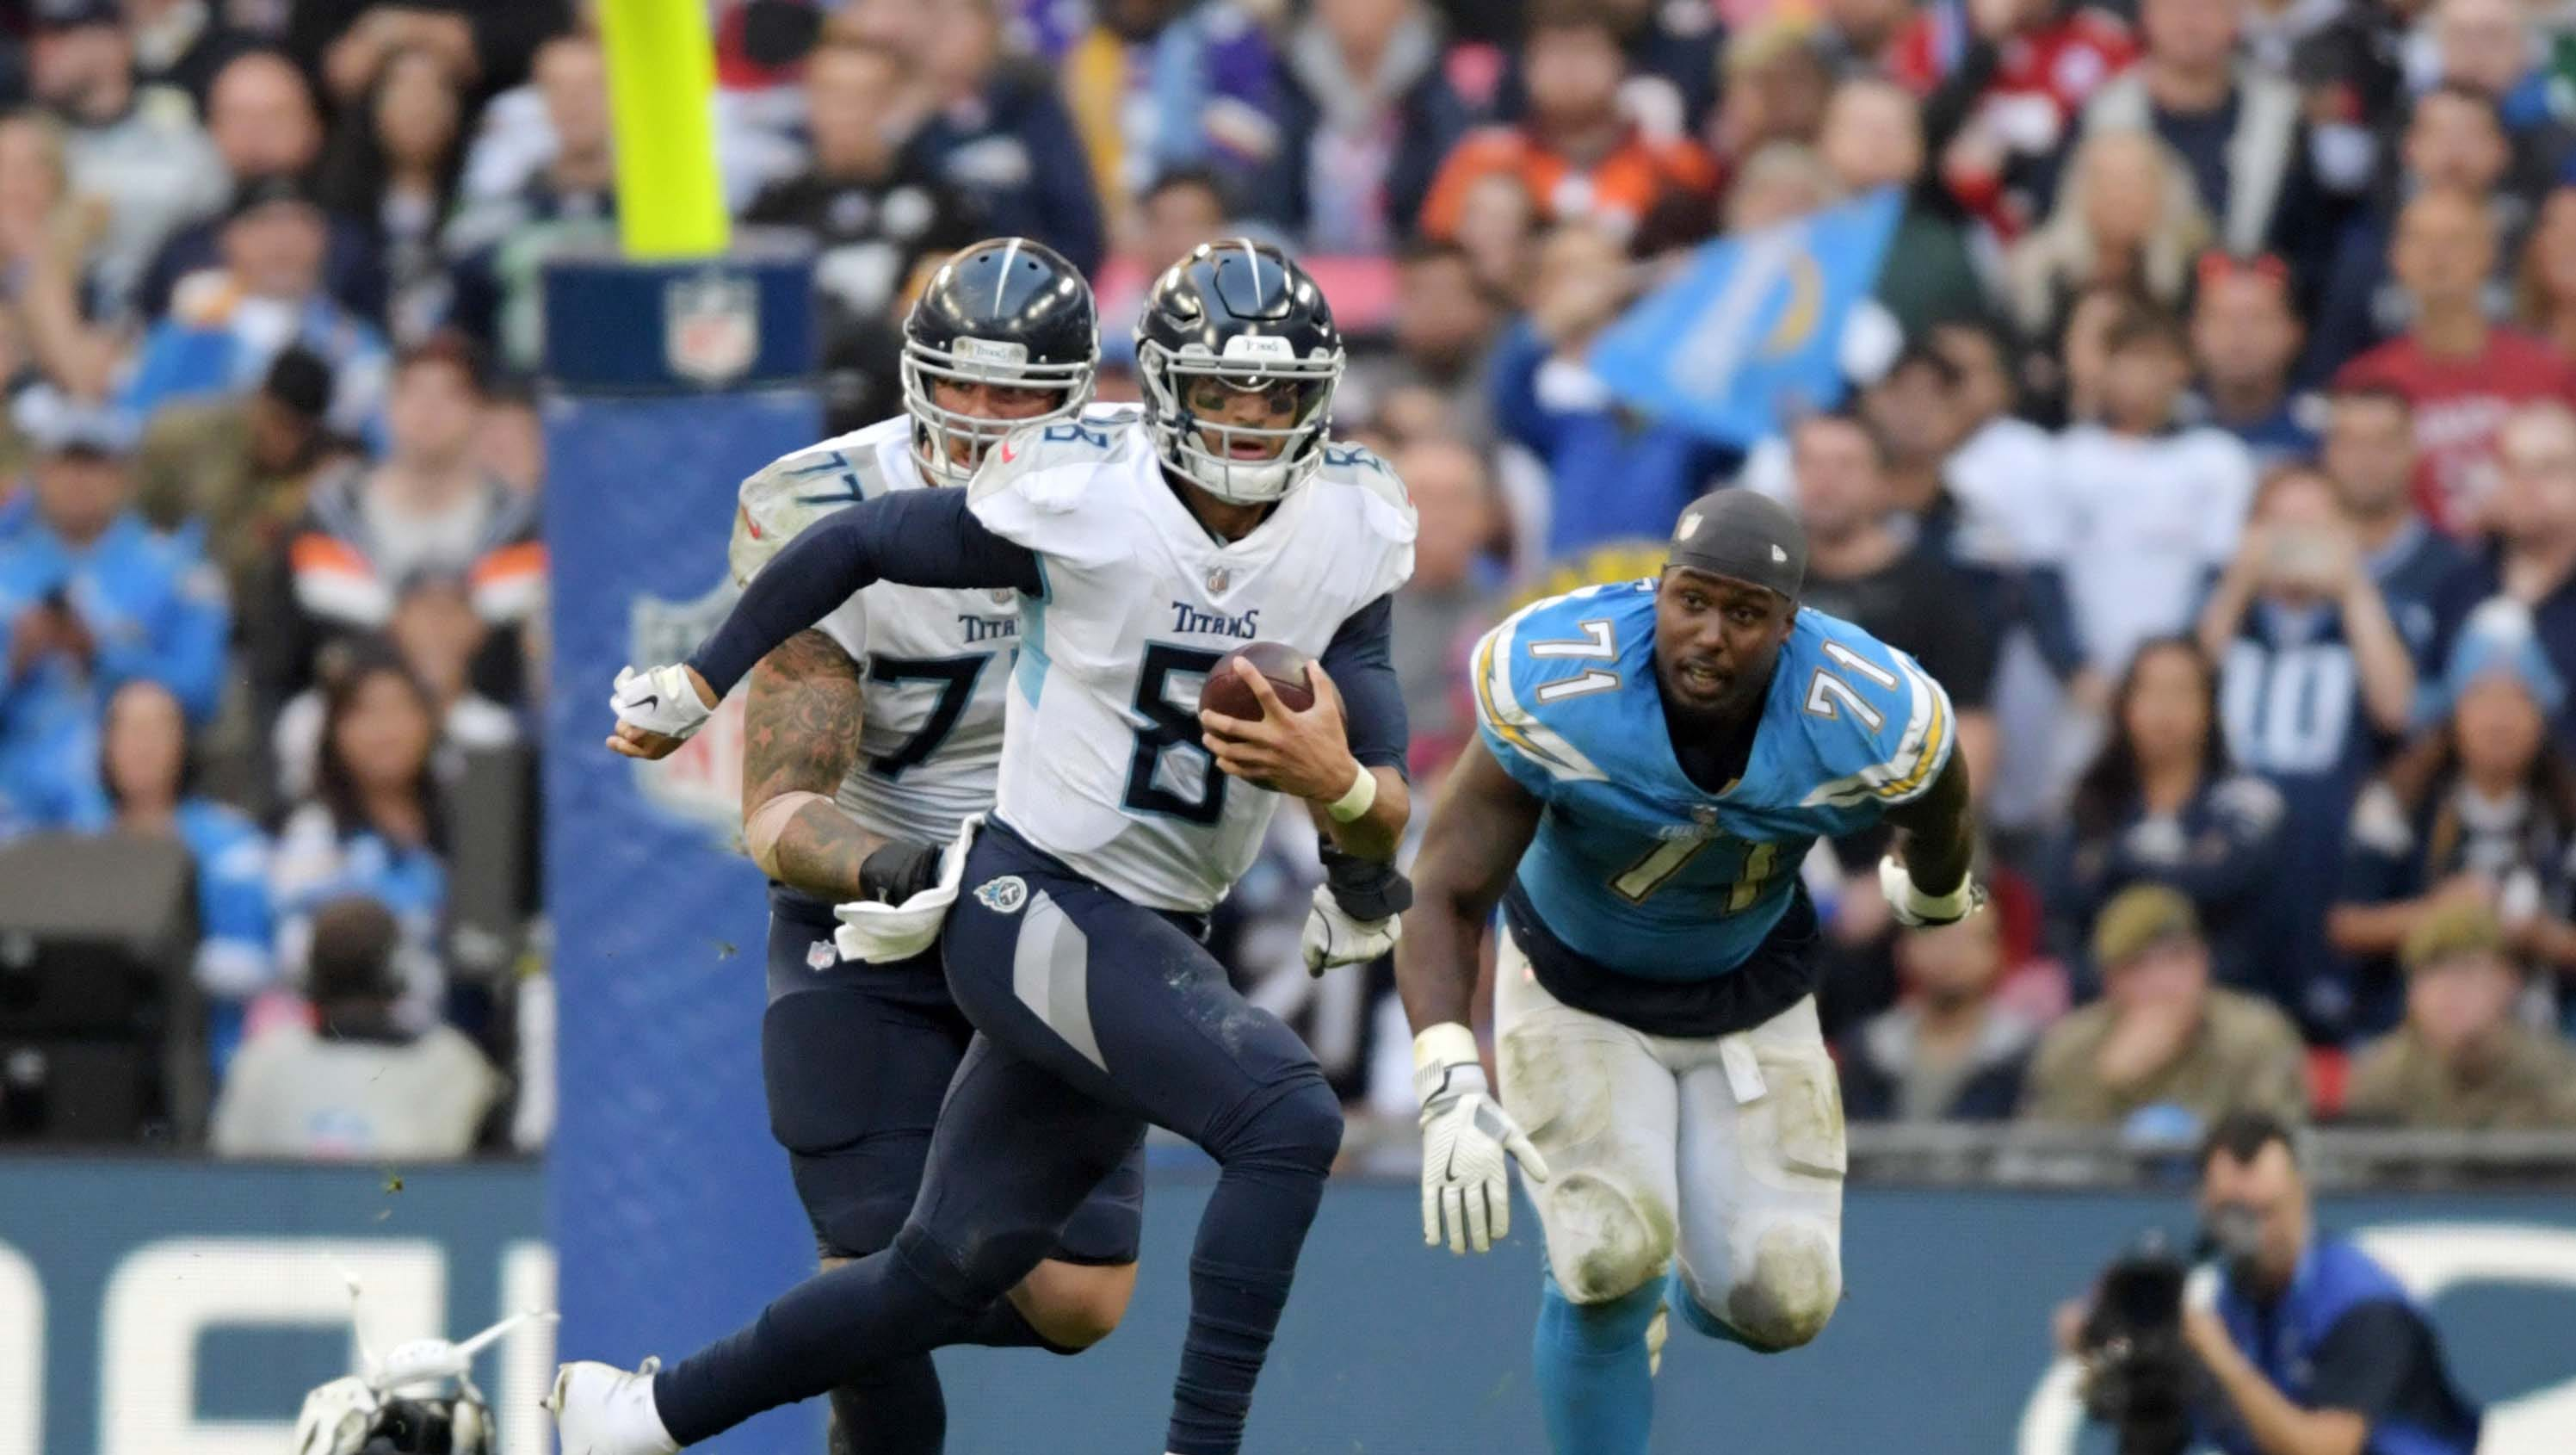 Oct 21, 2018; London, United Kingdom; Tennessee Titans quarterback Marcus Mariota (8) is pursued by Los Angeles Chargers defensive tackle Damion Square (71) on an 11-yard run in the fourth quarter during an NFL International Series game at Wembley Stadium. The Chargers defeated the Titans 20-19.